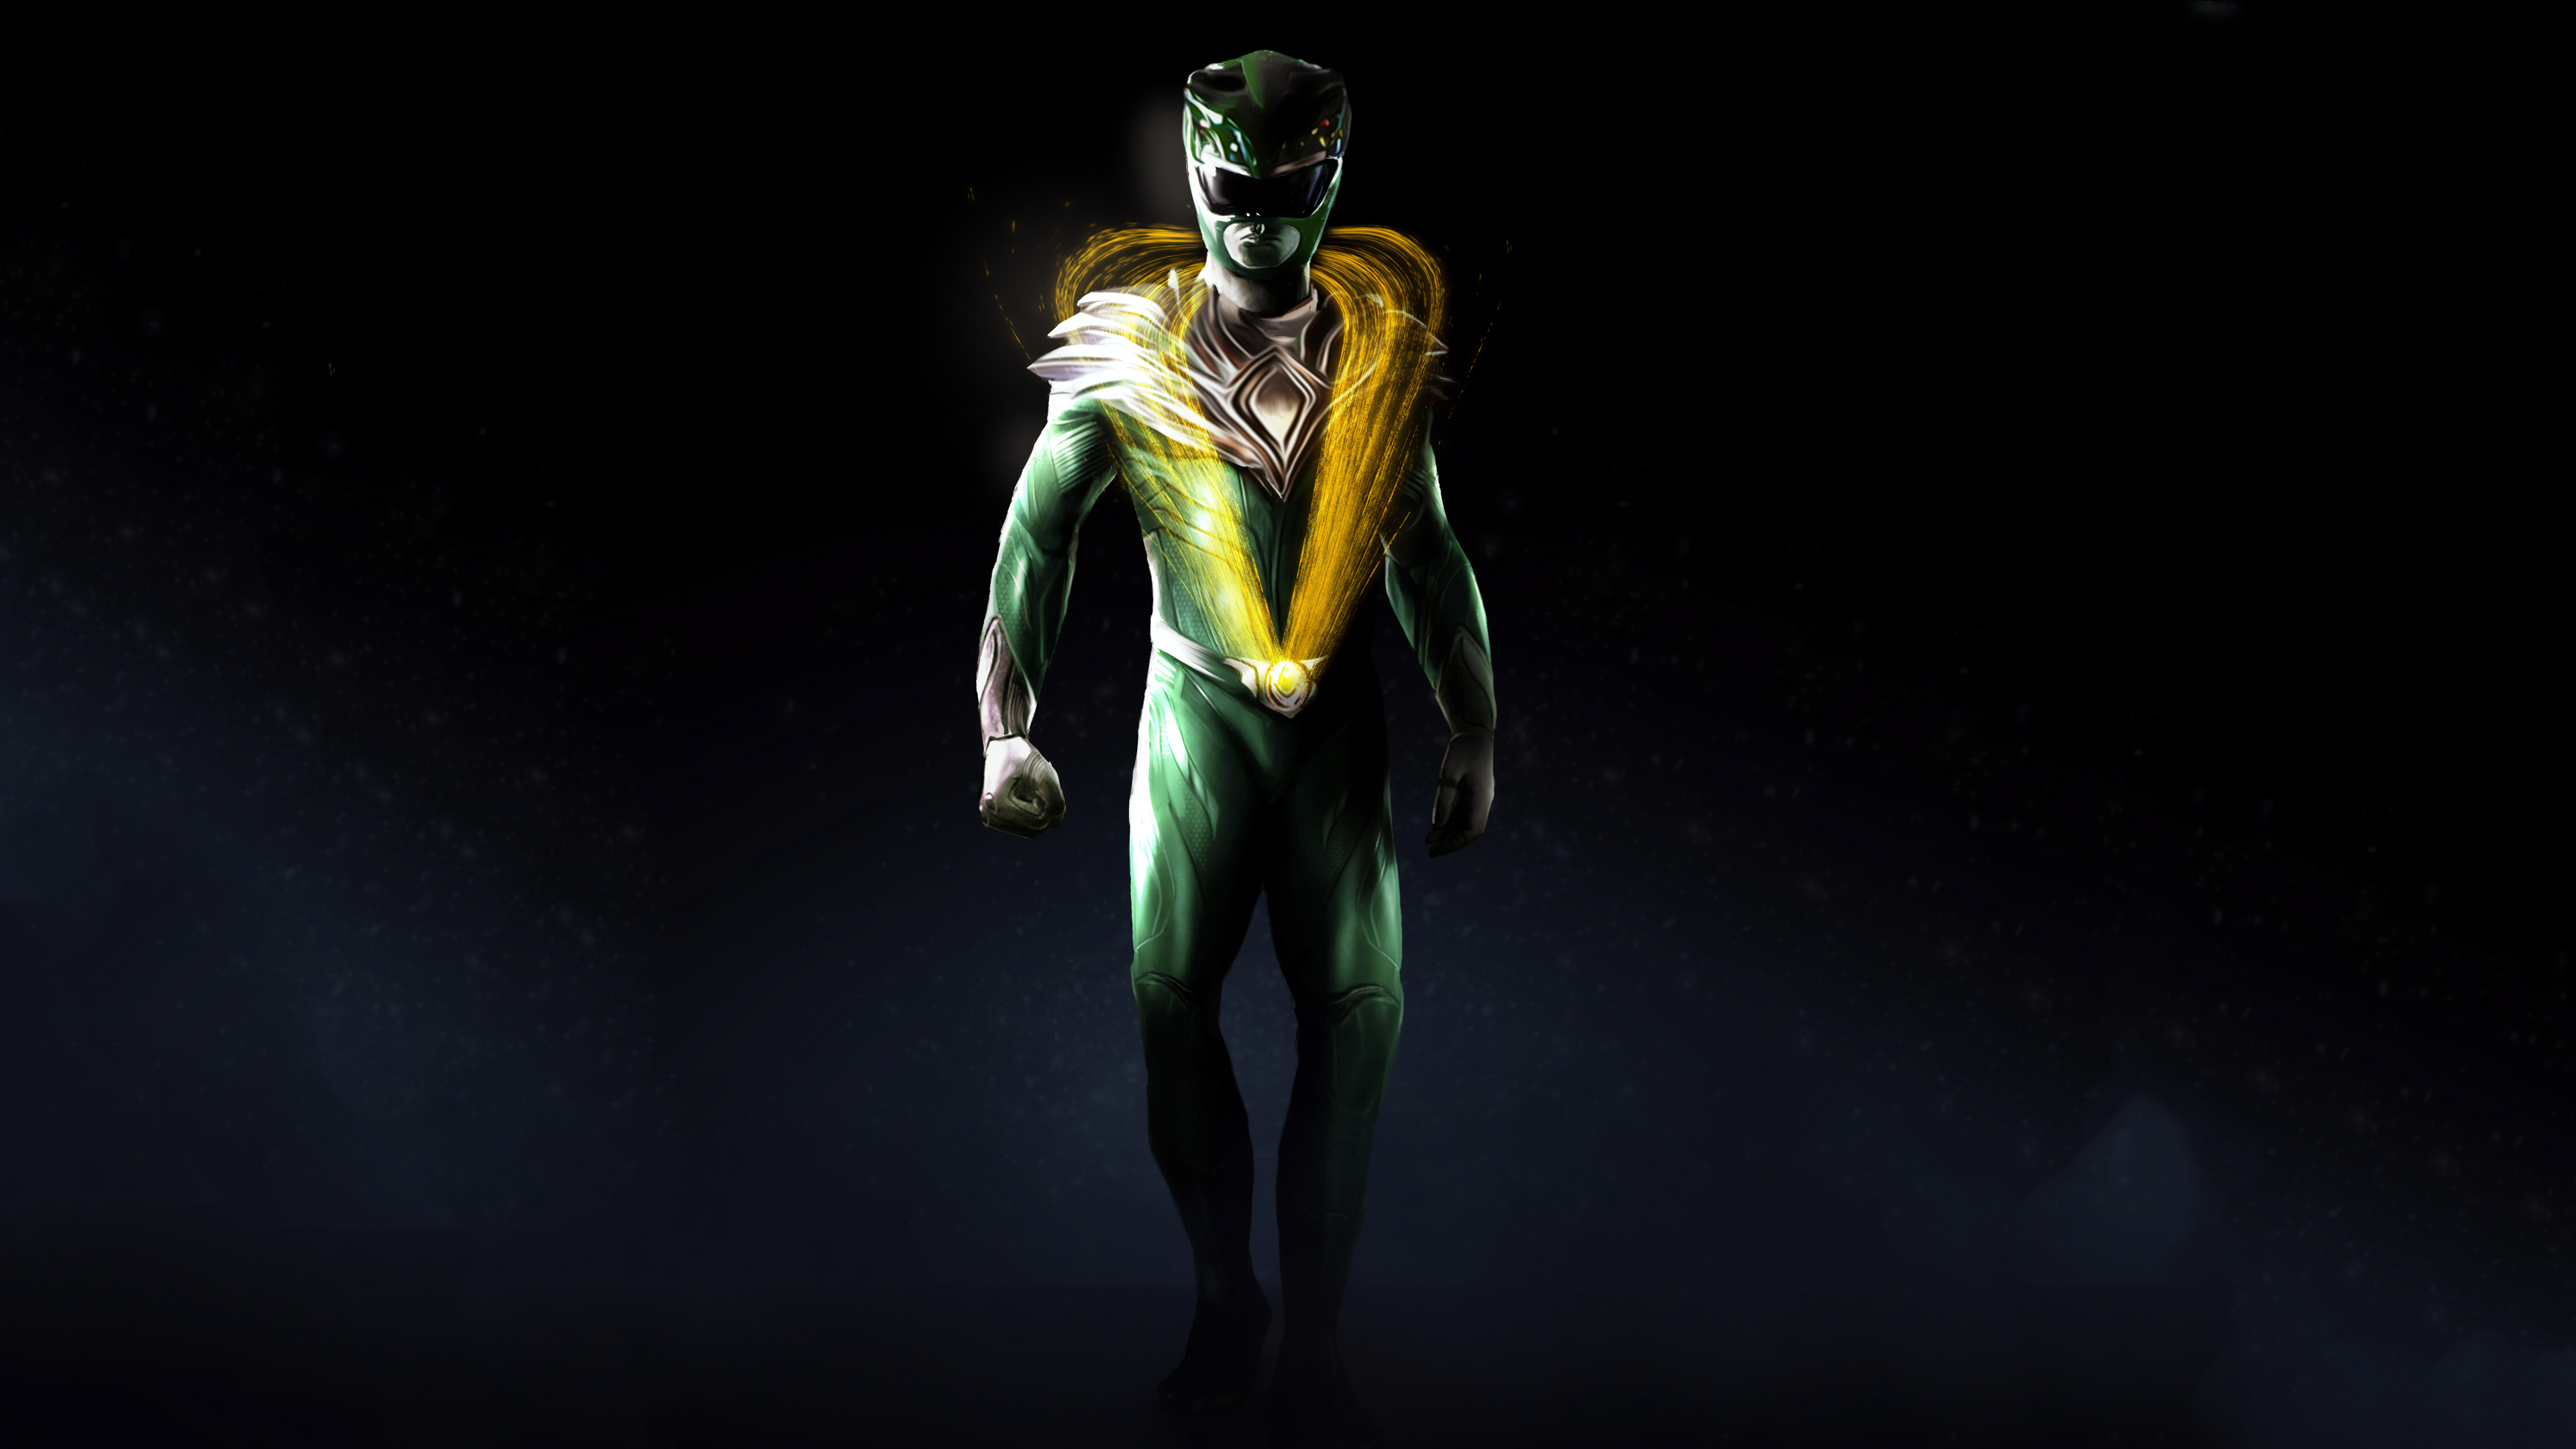 power rangers tommy oliver 1570394798 - Power Rangers Tommy Oliver - superheroes wallpapers, power rangers wallpapers, hd-wallpapers, artstation wallpapers, 4k-wallpapers